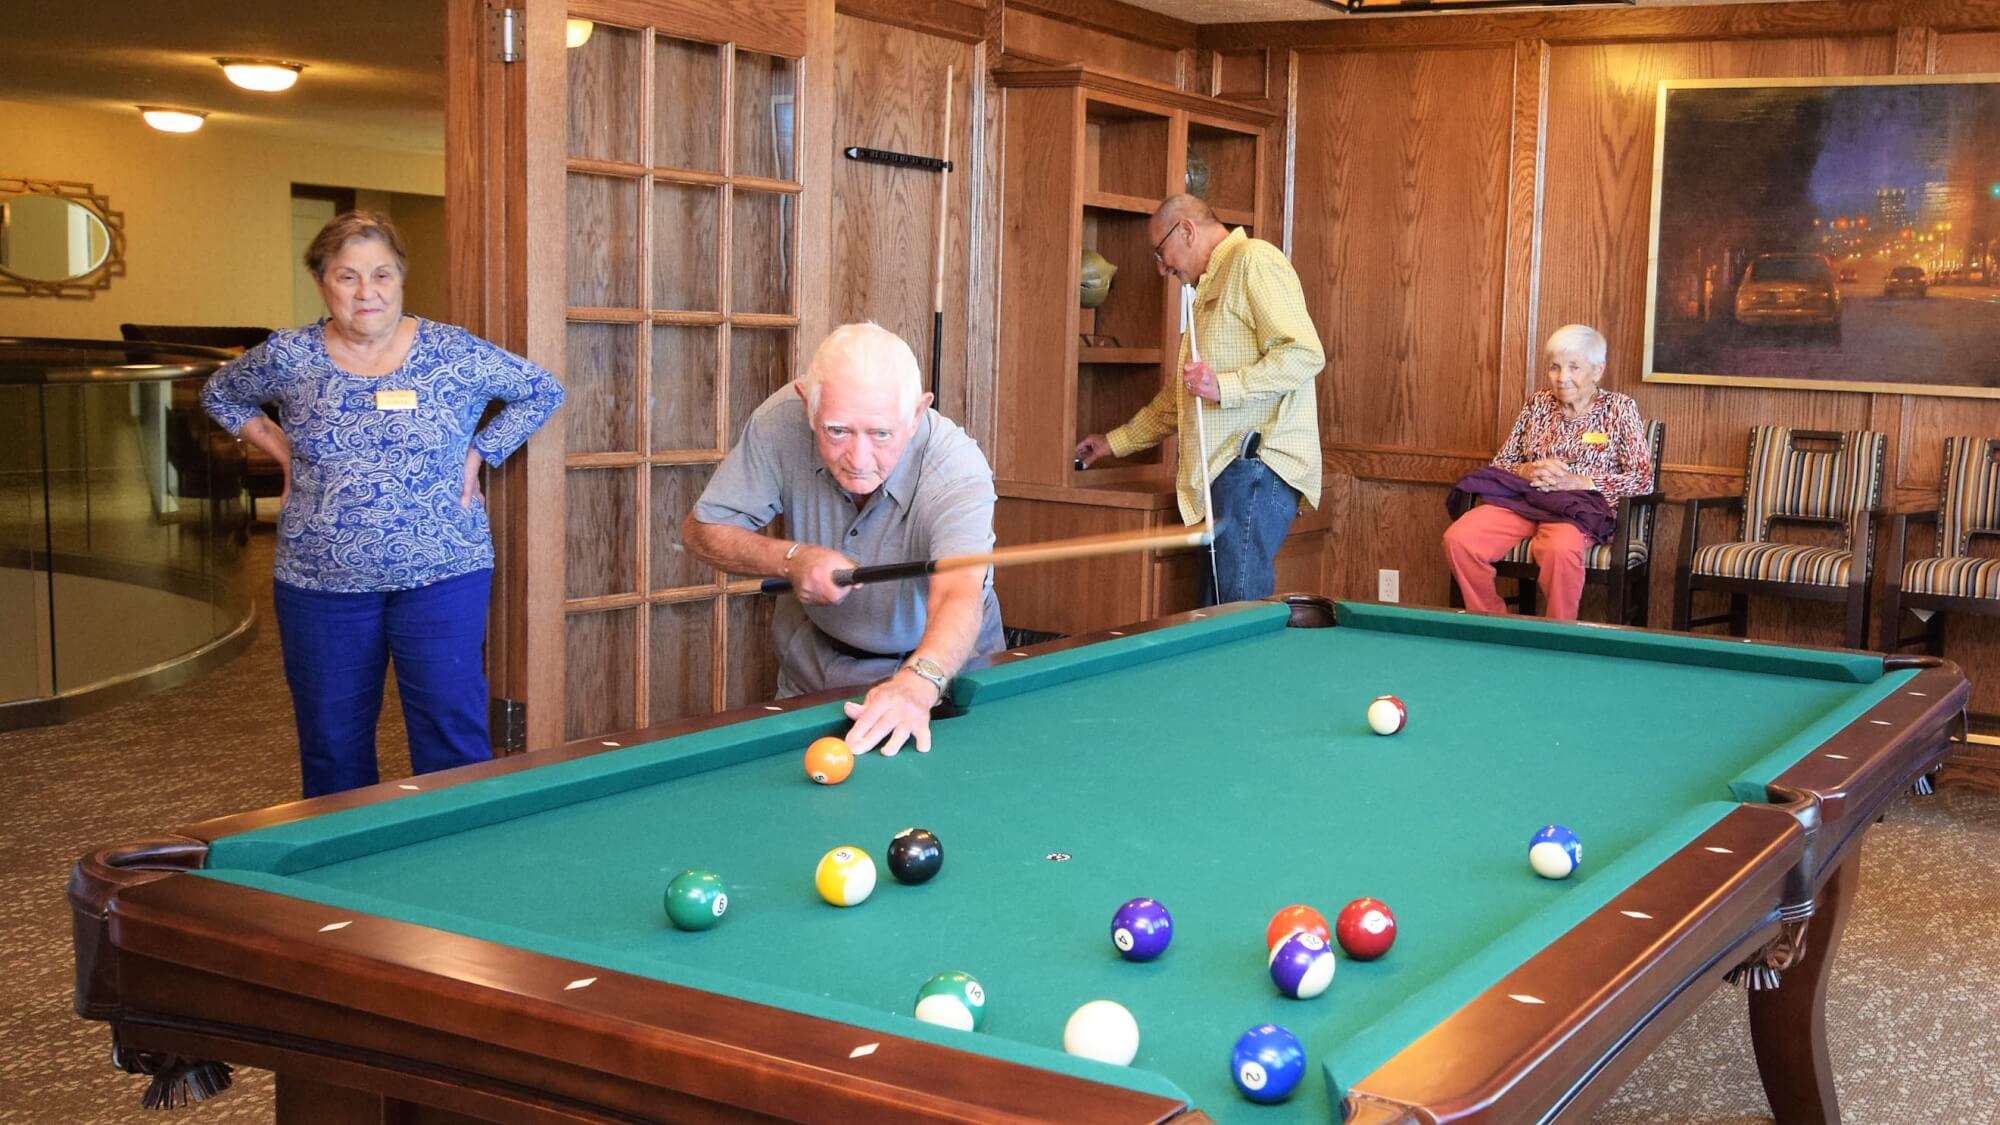 Nothing better than a game of pool with friends at Stone River.